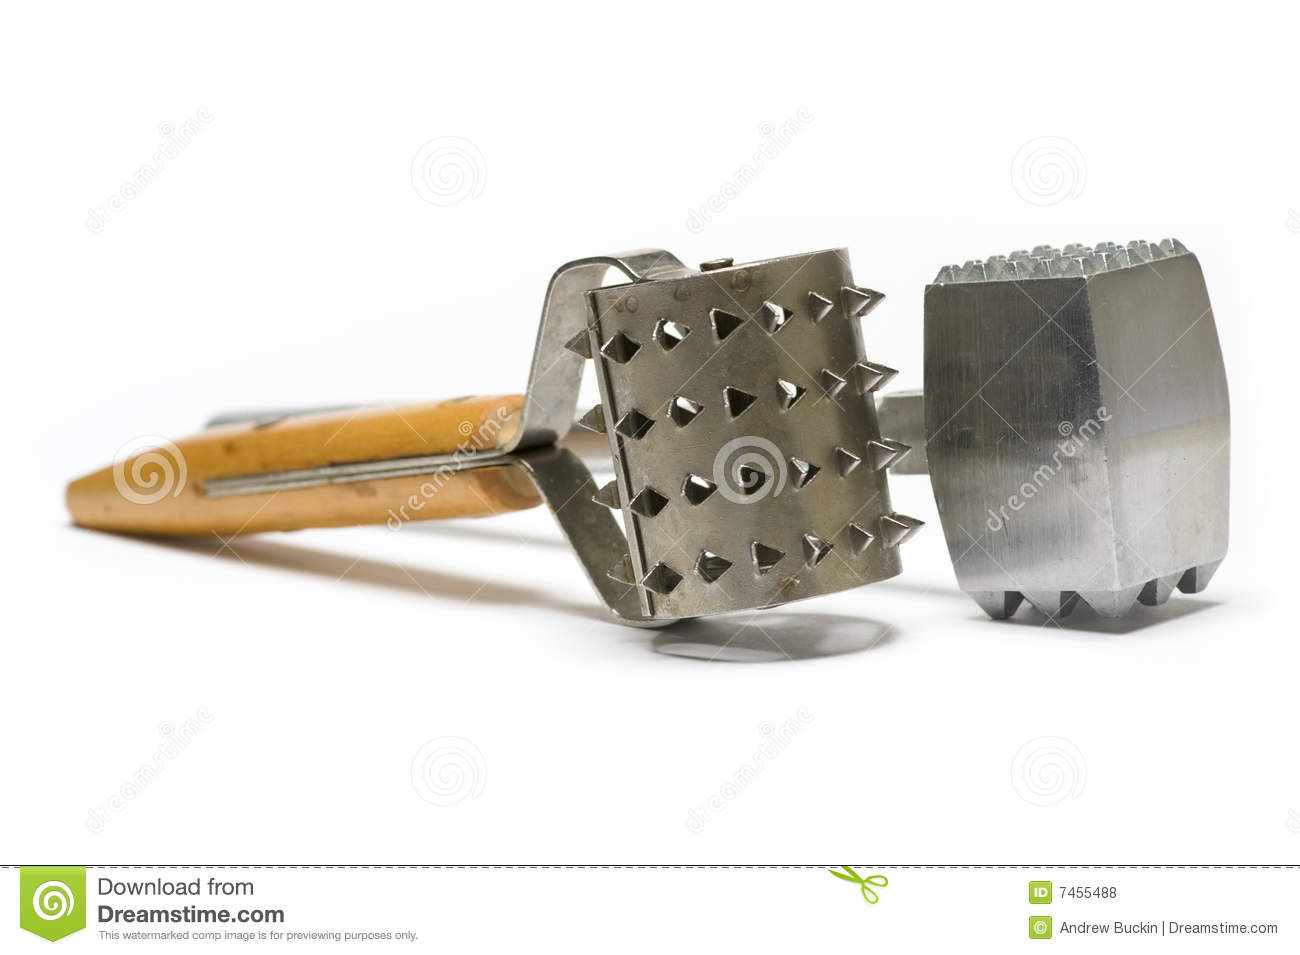 Pizza Roller Pizza Roller Tenderizer Stock Photo Image Of Utensil 7455488